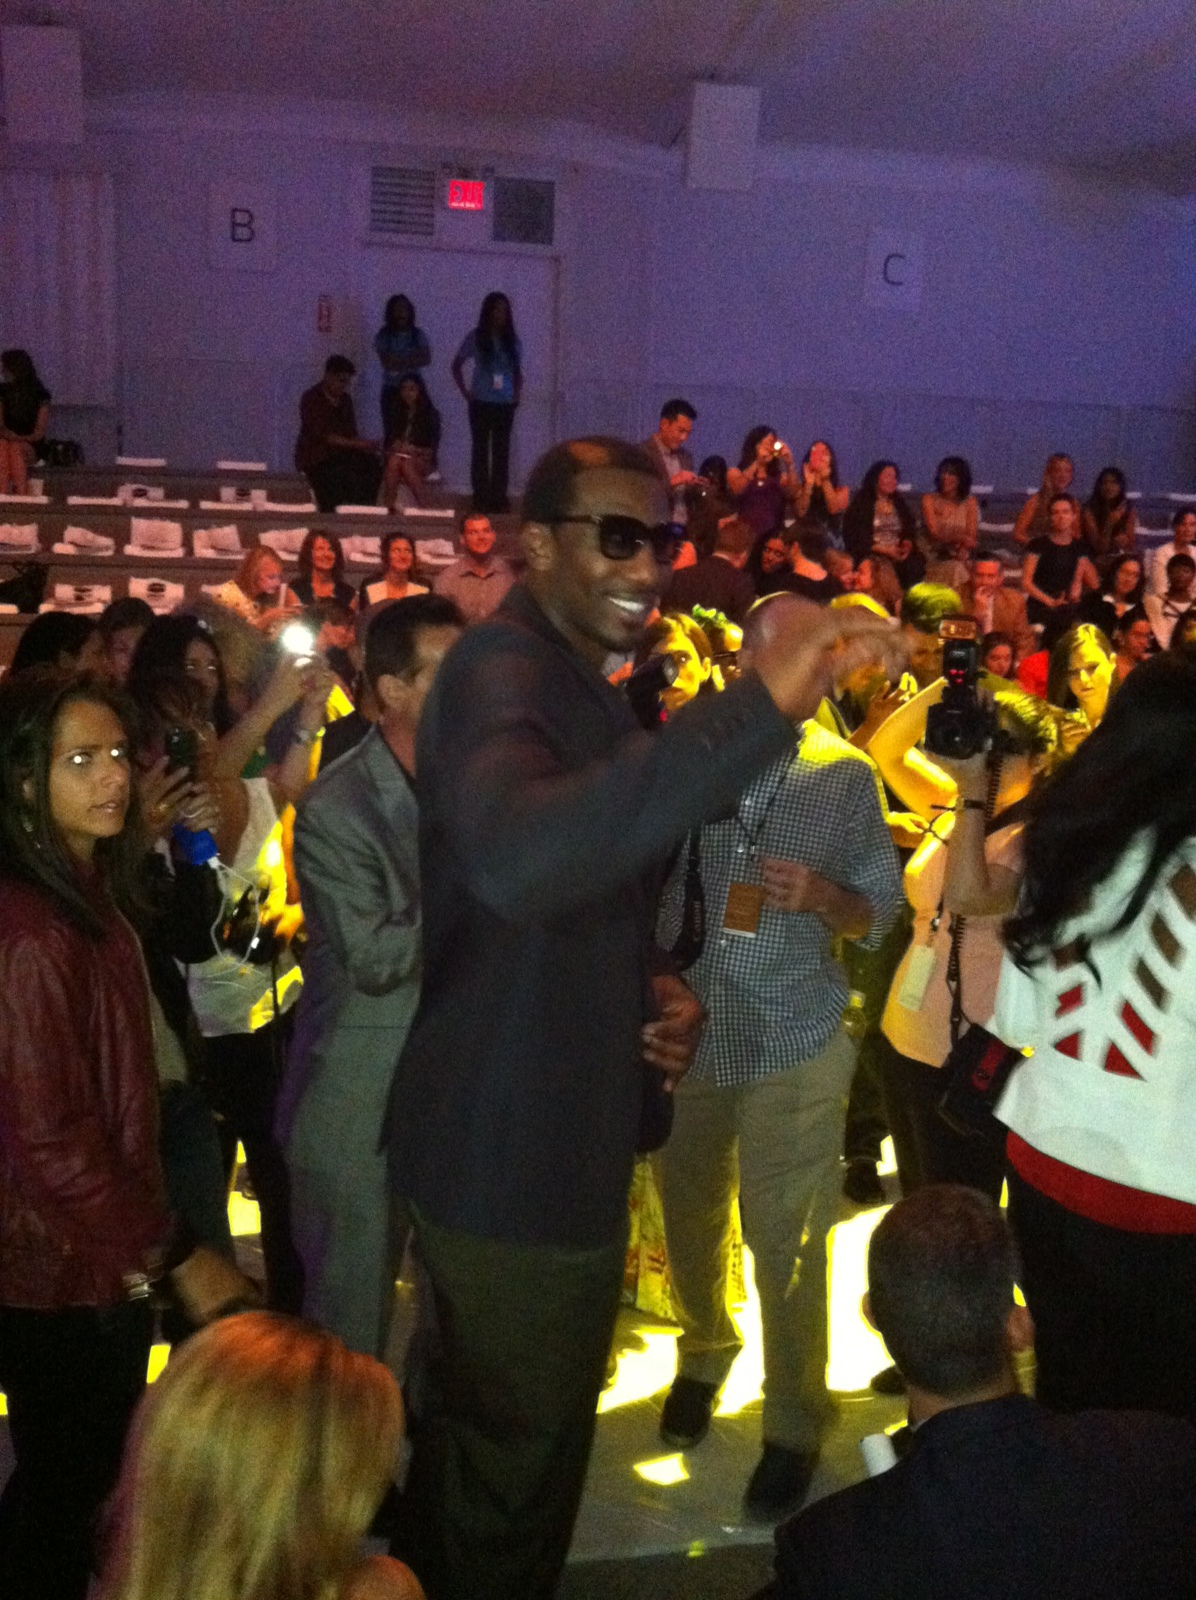 The fashionable Amar'e Stoudemire front row at the show to watch his wife strut for the Amar'e Stoudemire Foundation